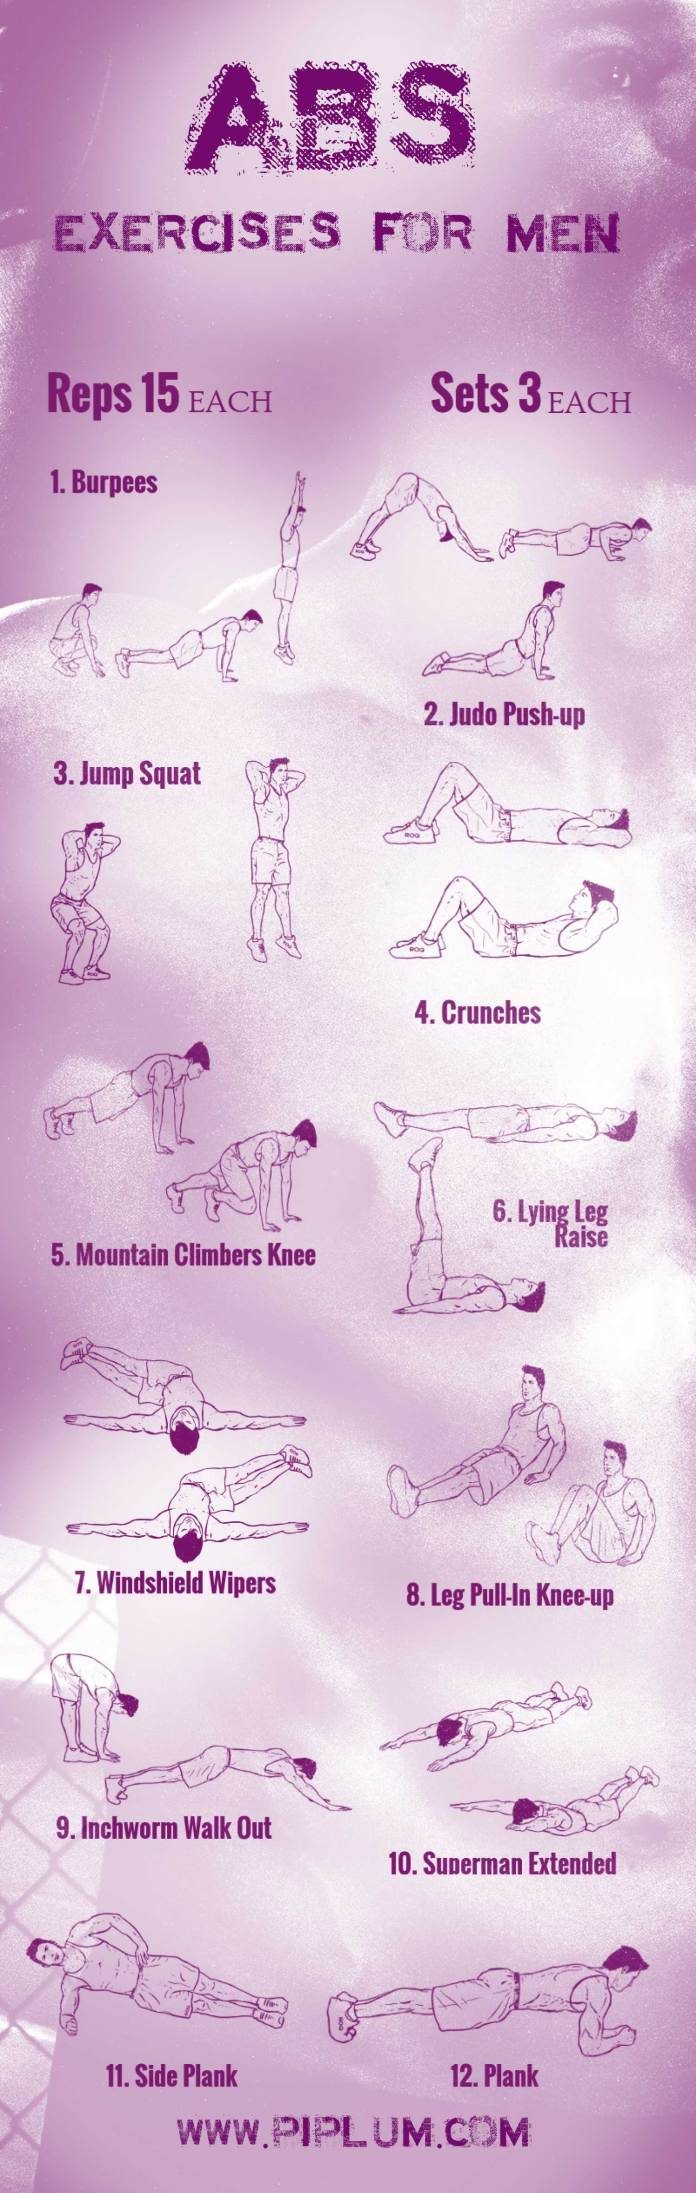 abs-exercises-for-men-poster